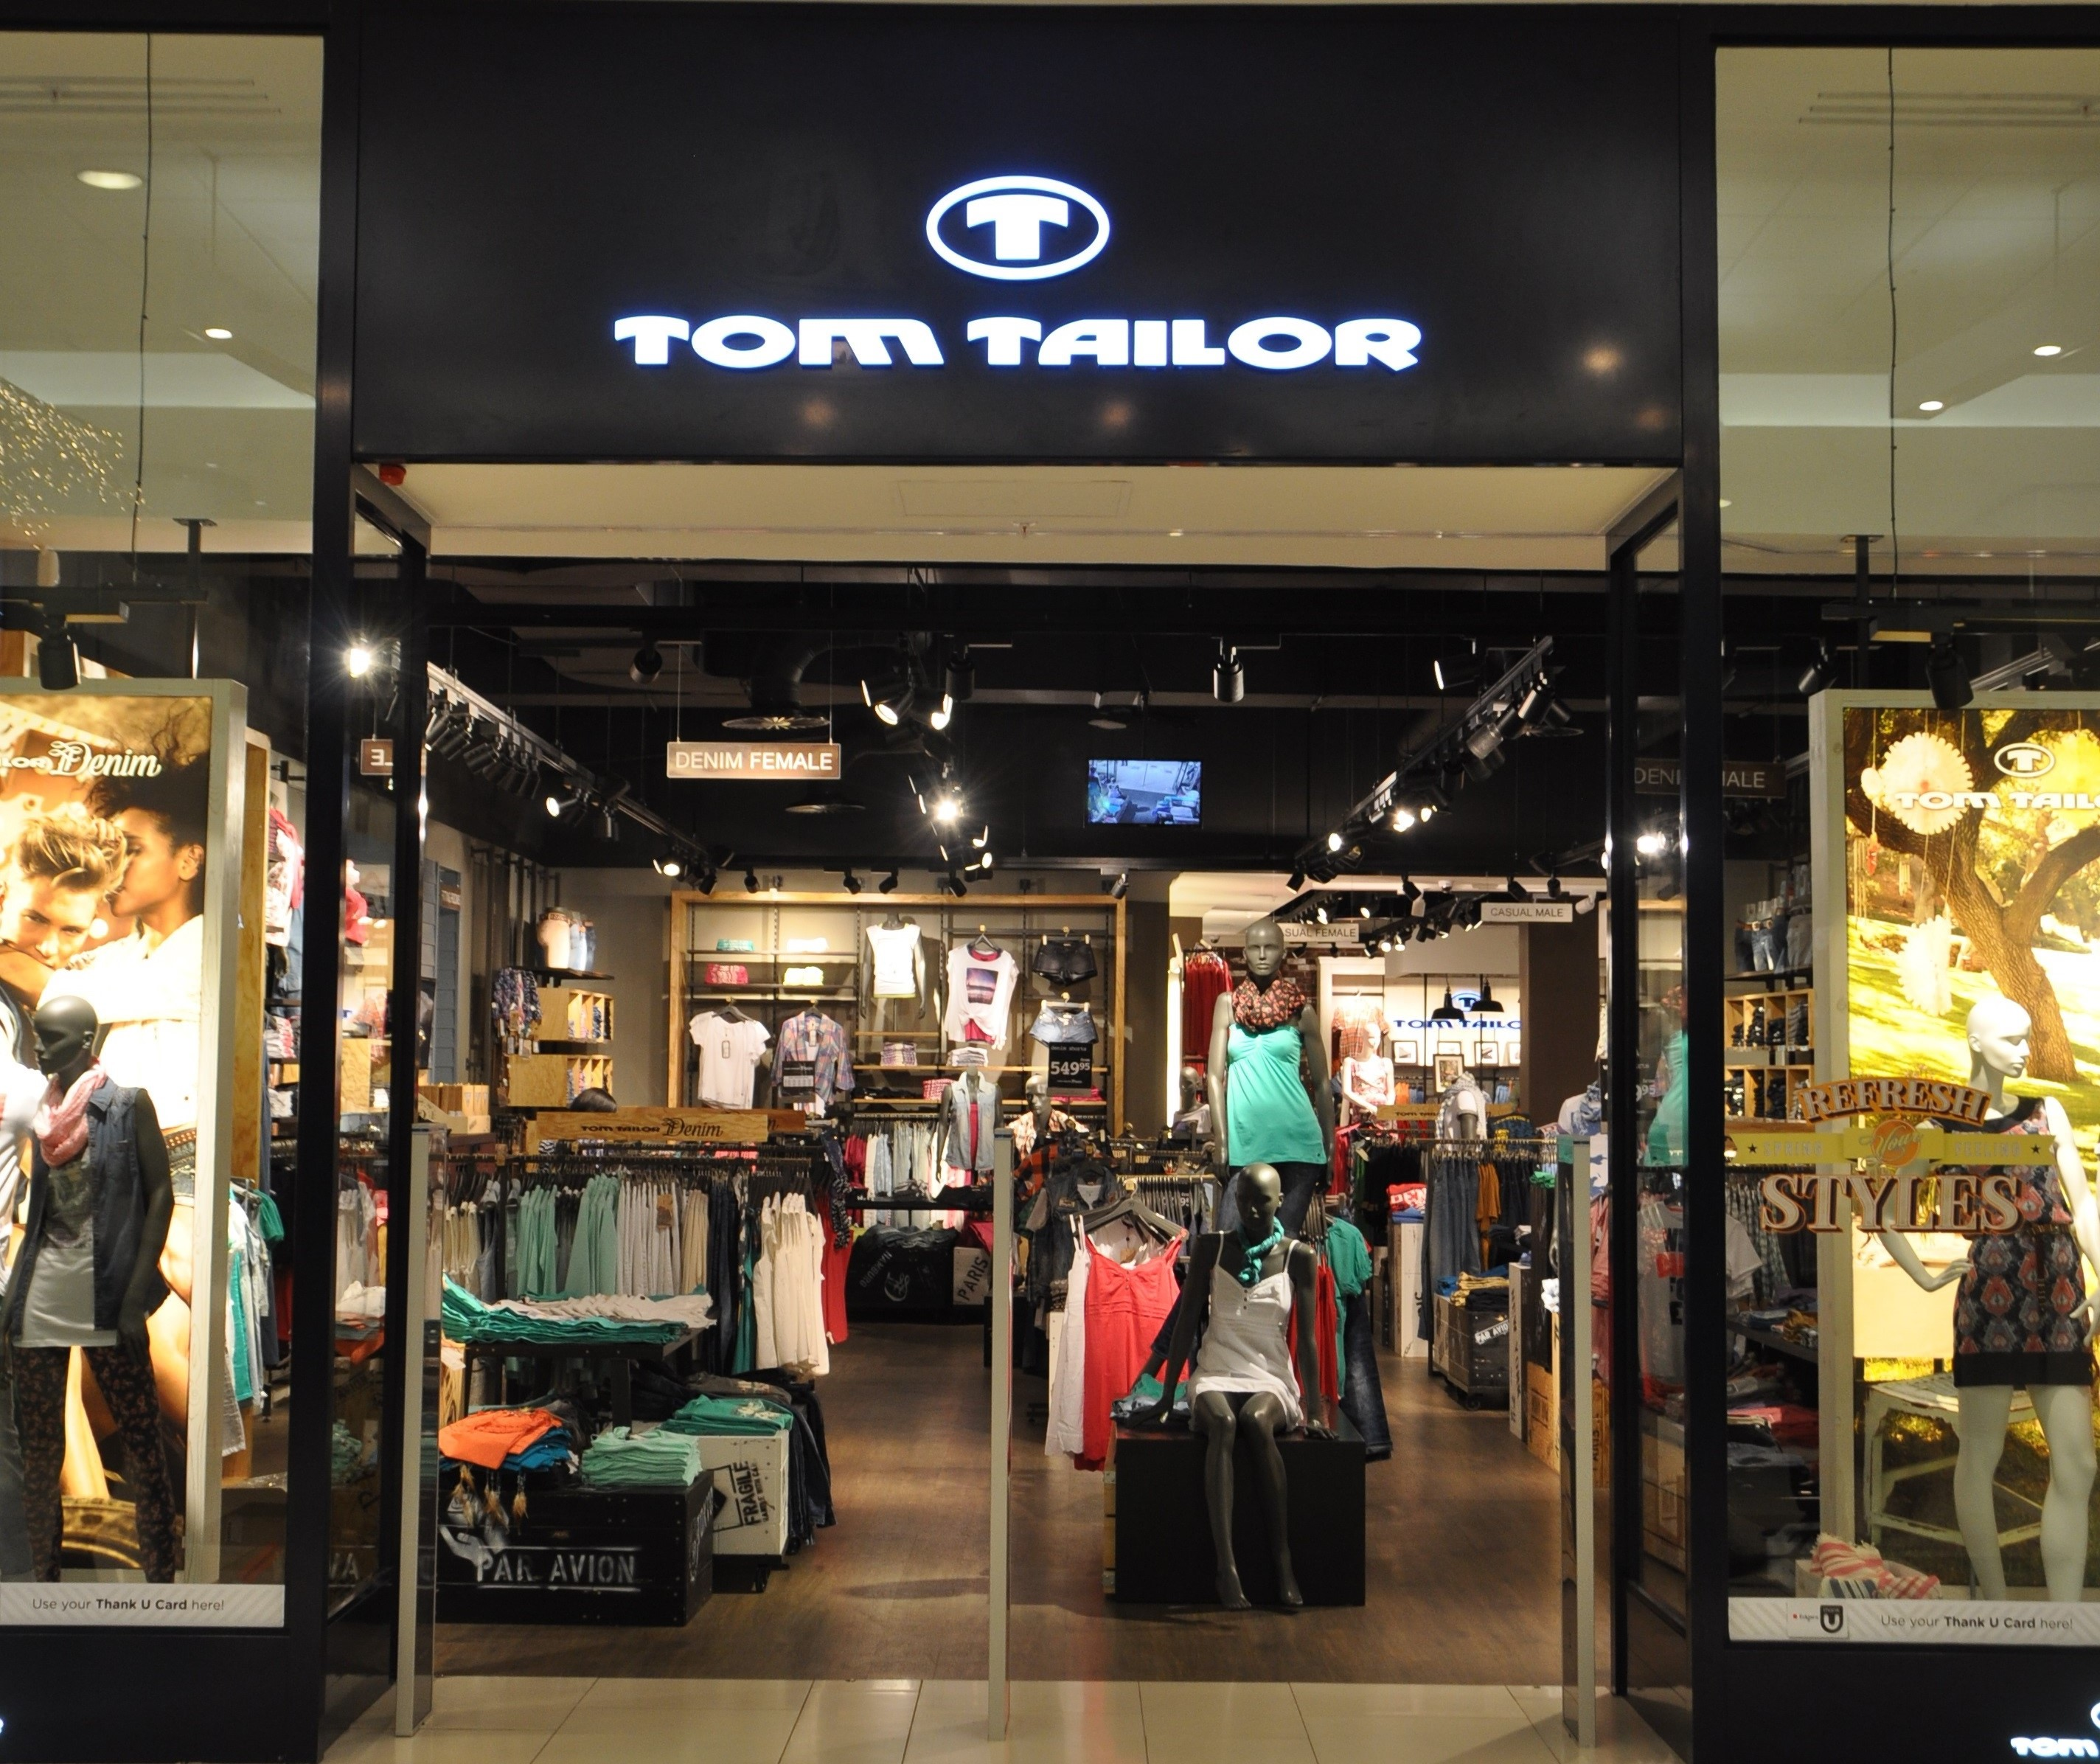 Edgars deploys in-store digital media at new Tom Tailor store